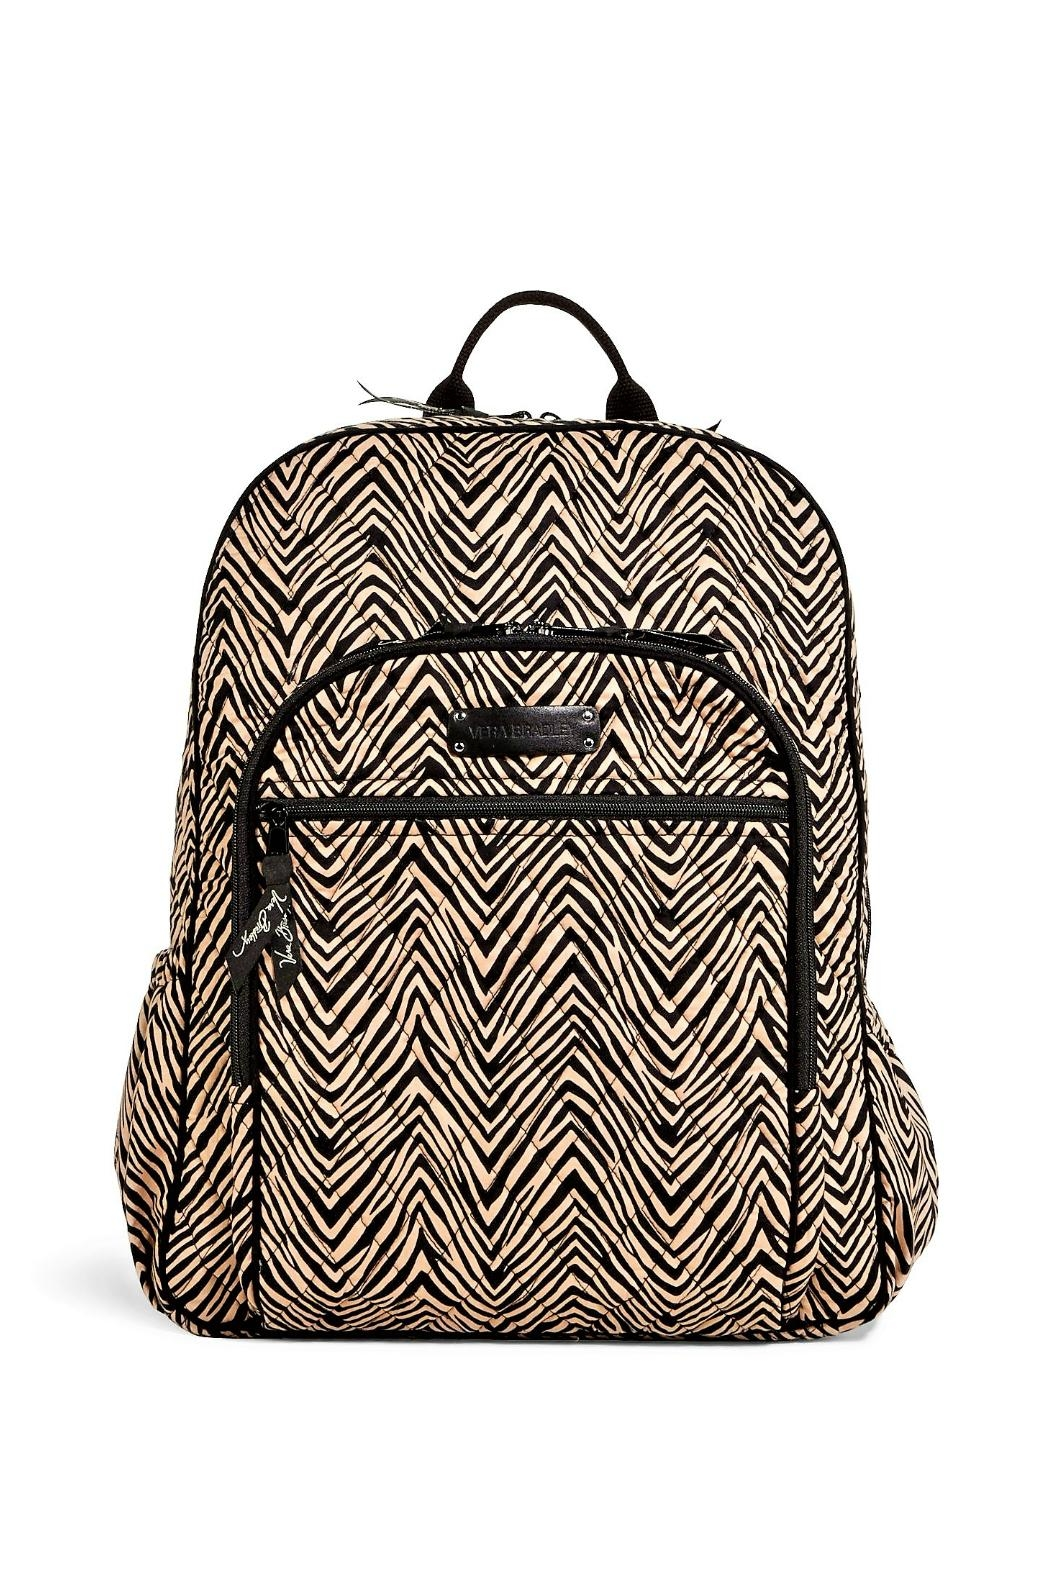 Vera Bradley Zebra Campus Backpack - Main Image